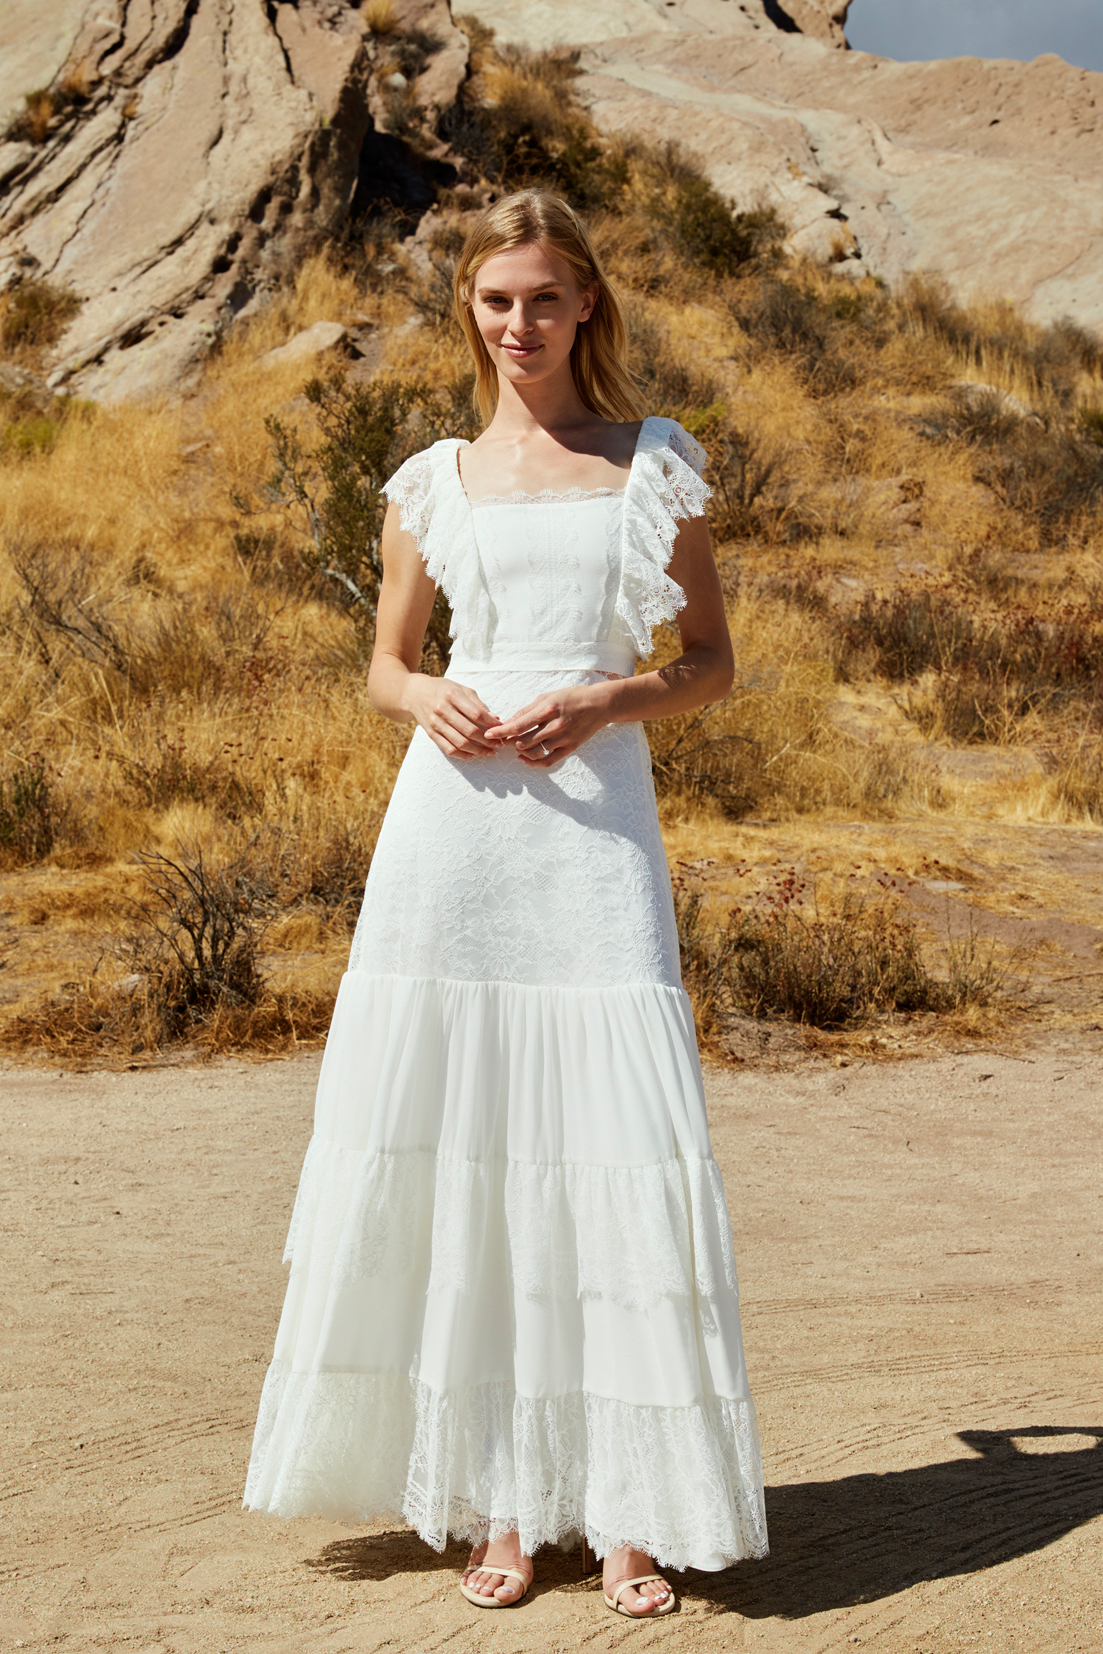 savannah miller fall 2018 tiered lace sleeve wedding dress